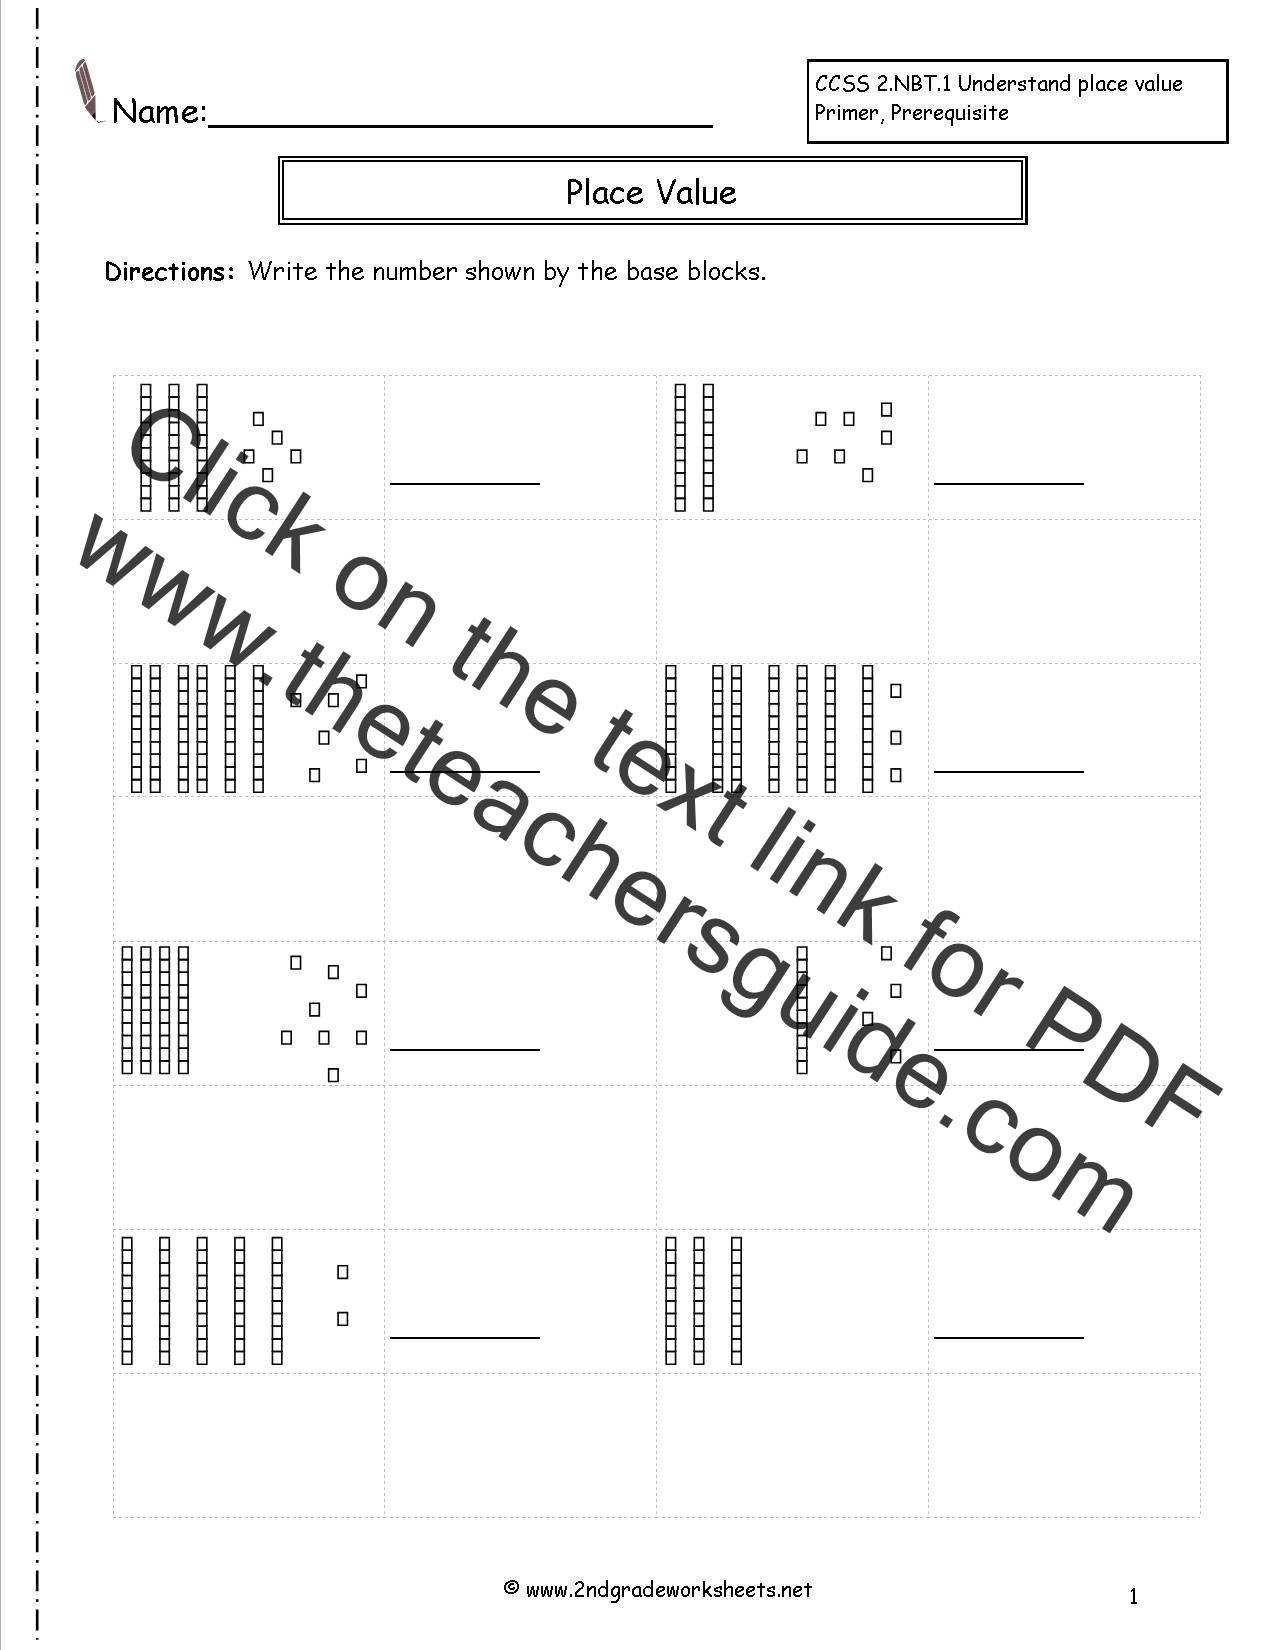 Place Values Worksheets And Worksheets For Kids